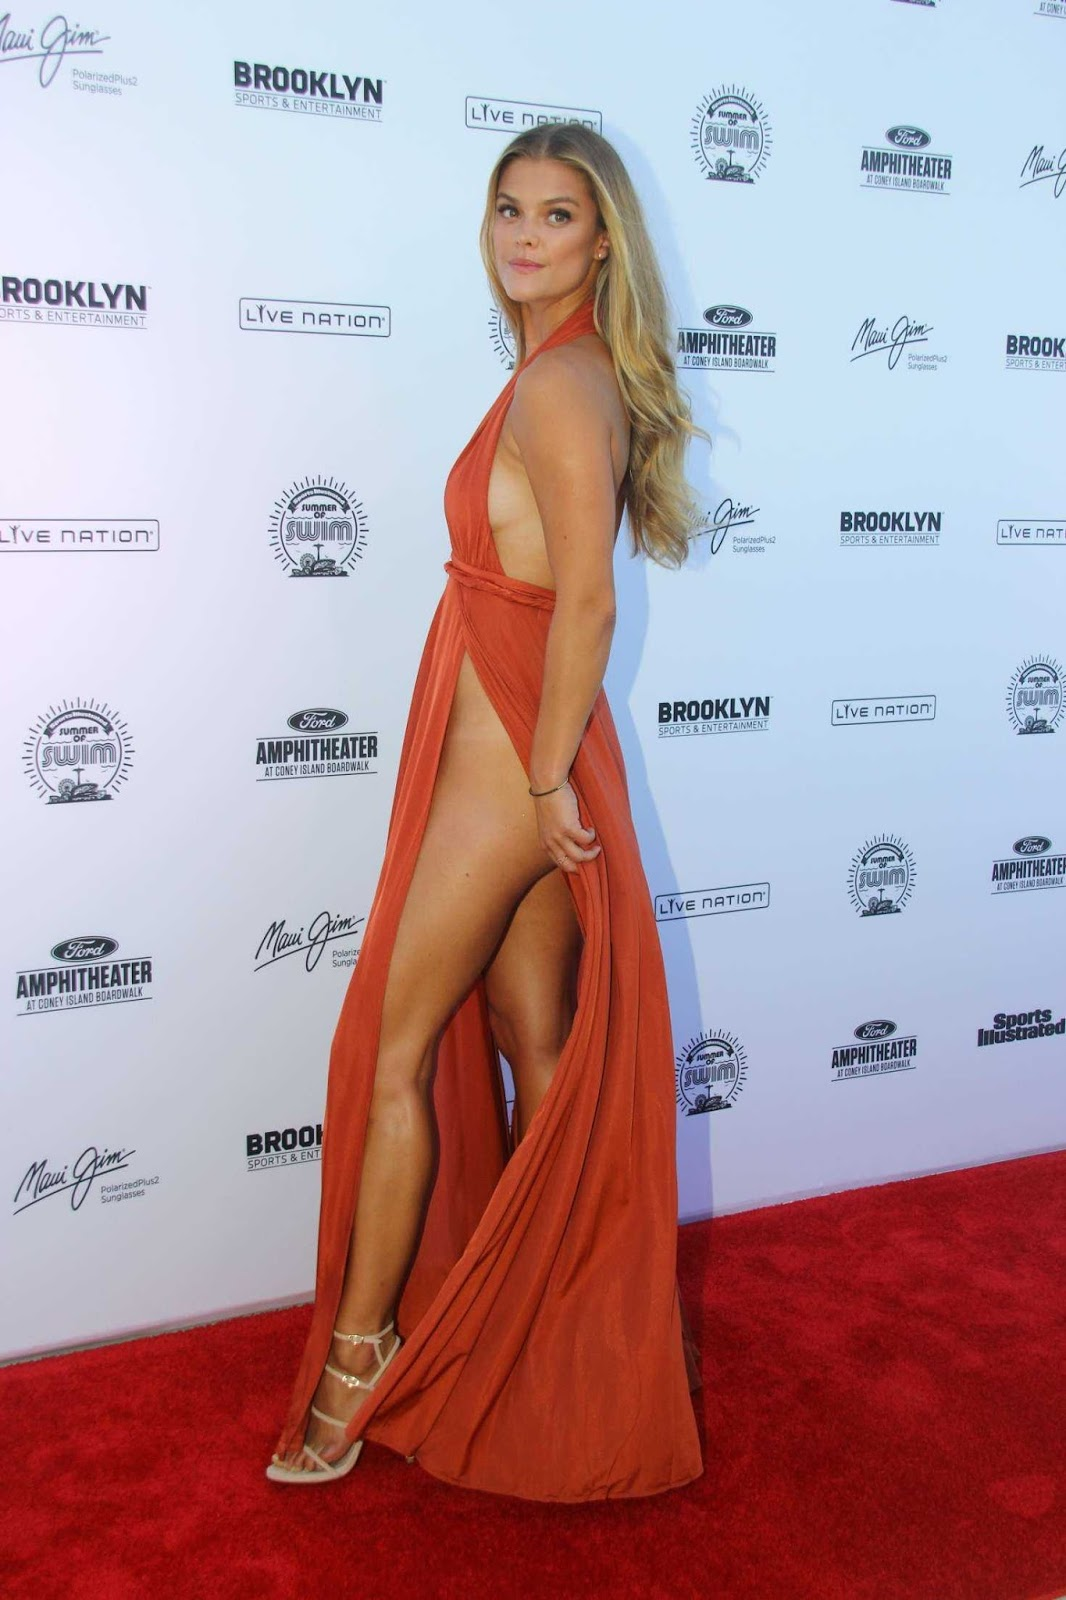 Nina Agdal goes sans underwear at the 2016 Sports Illustrated Summer of Swim Concert